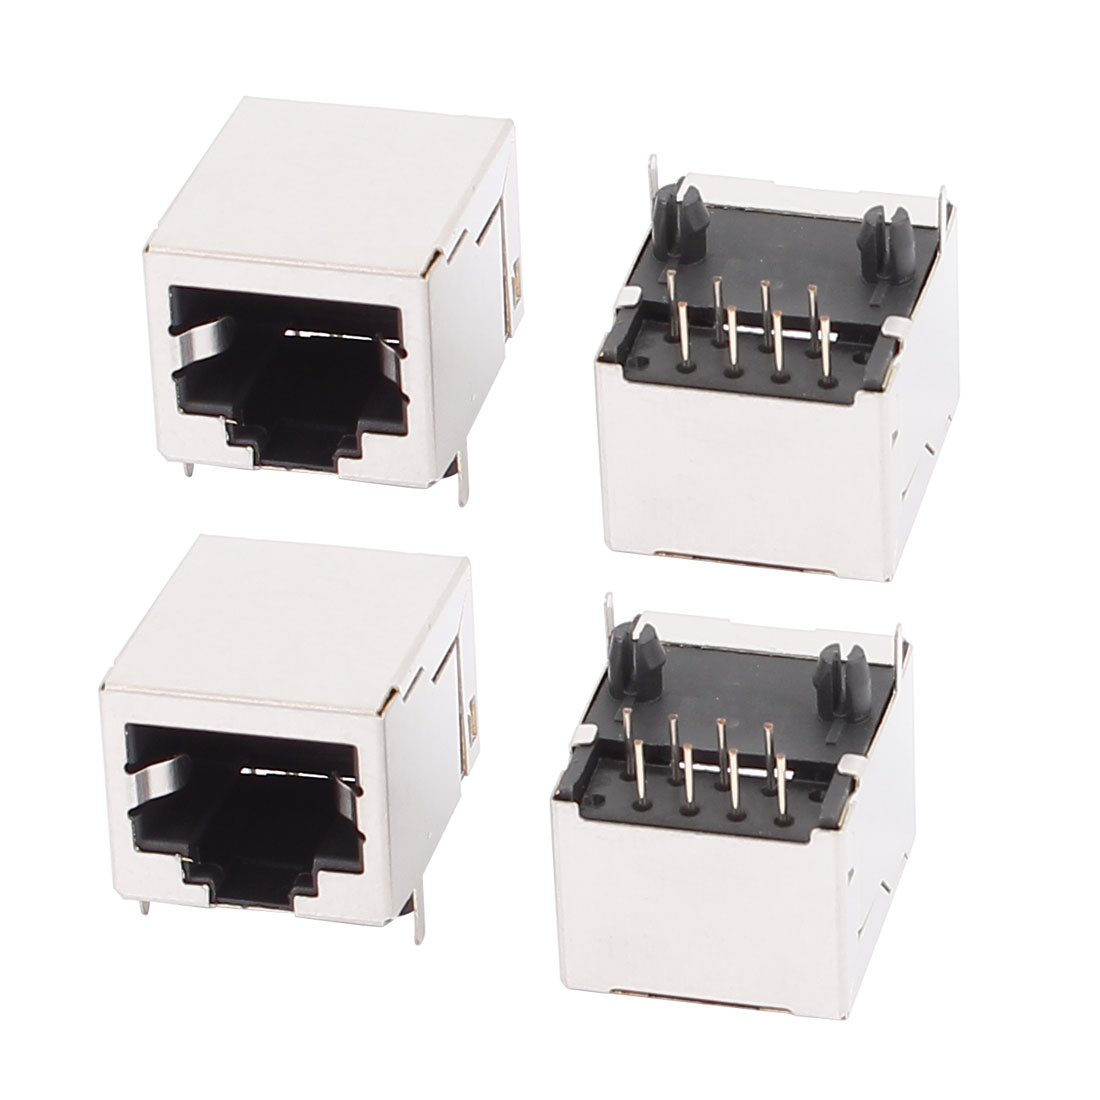 4Pcs RJ45 8P8C PCB Jacks Horizontal Mount Connectors Ethernet Sockets